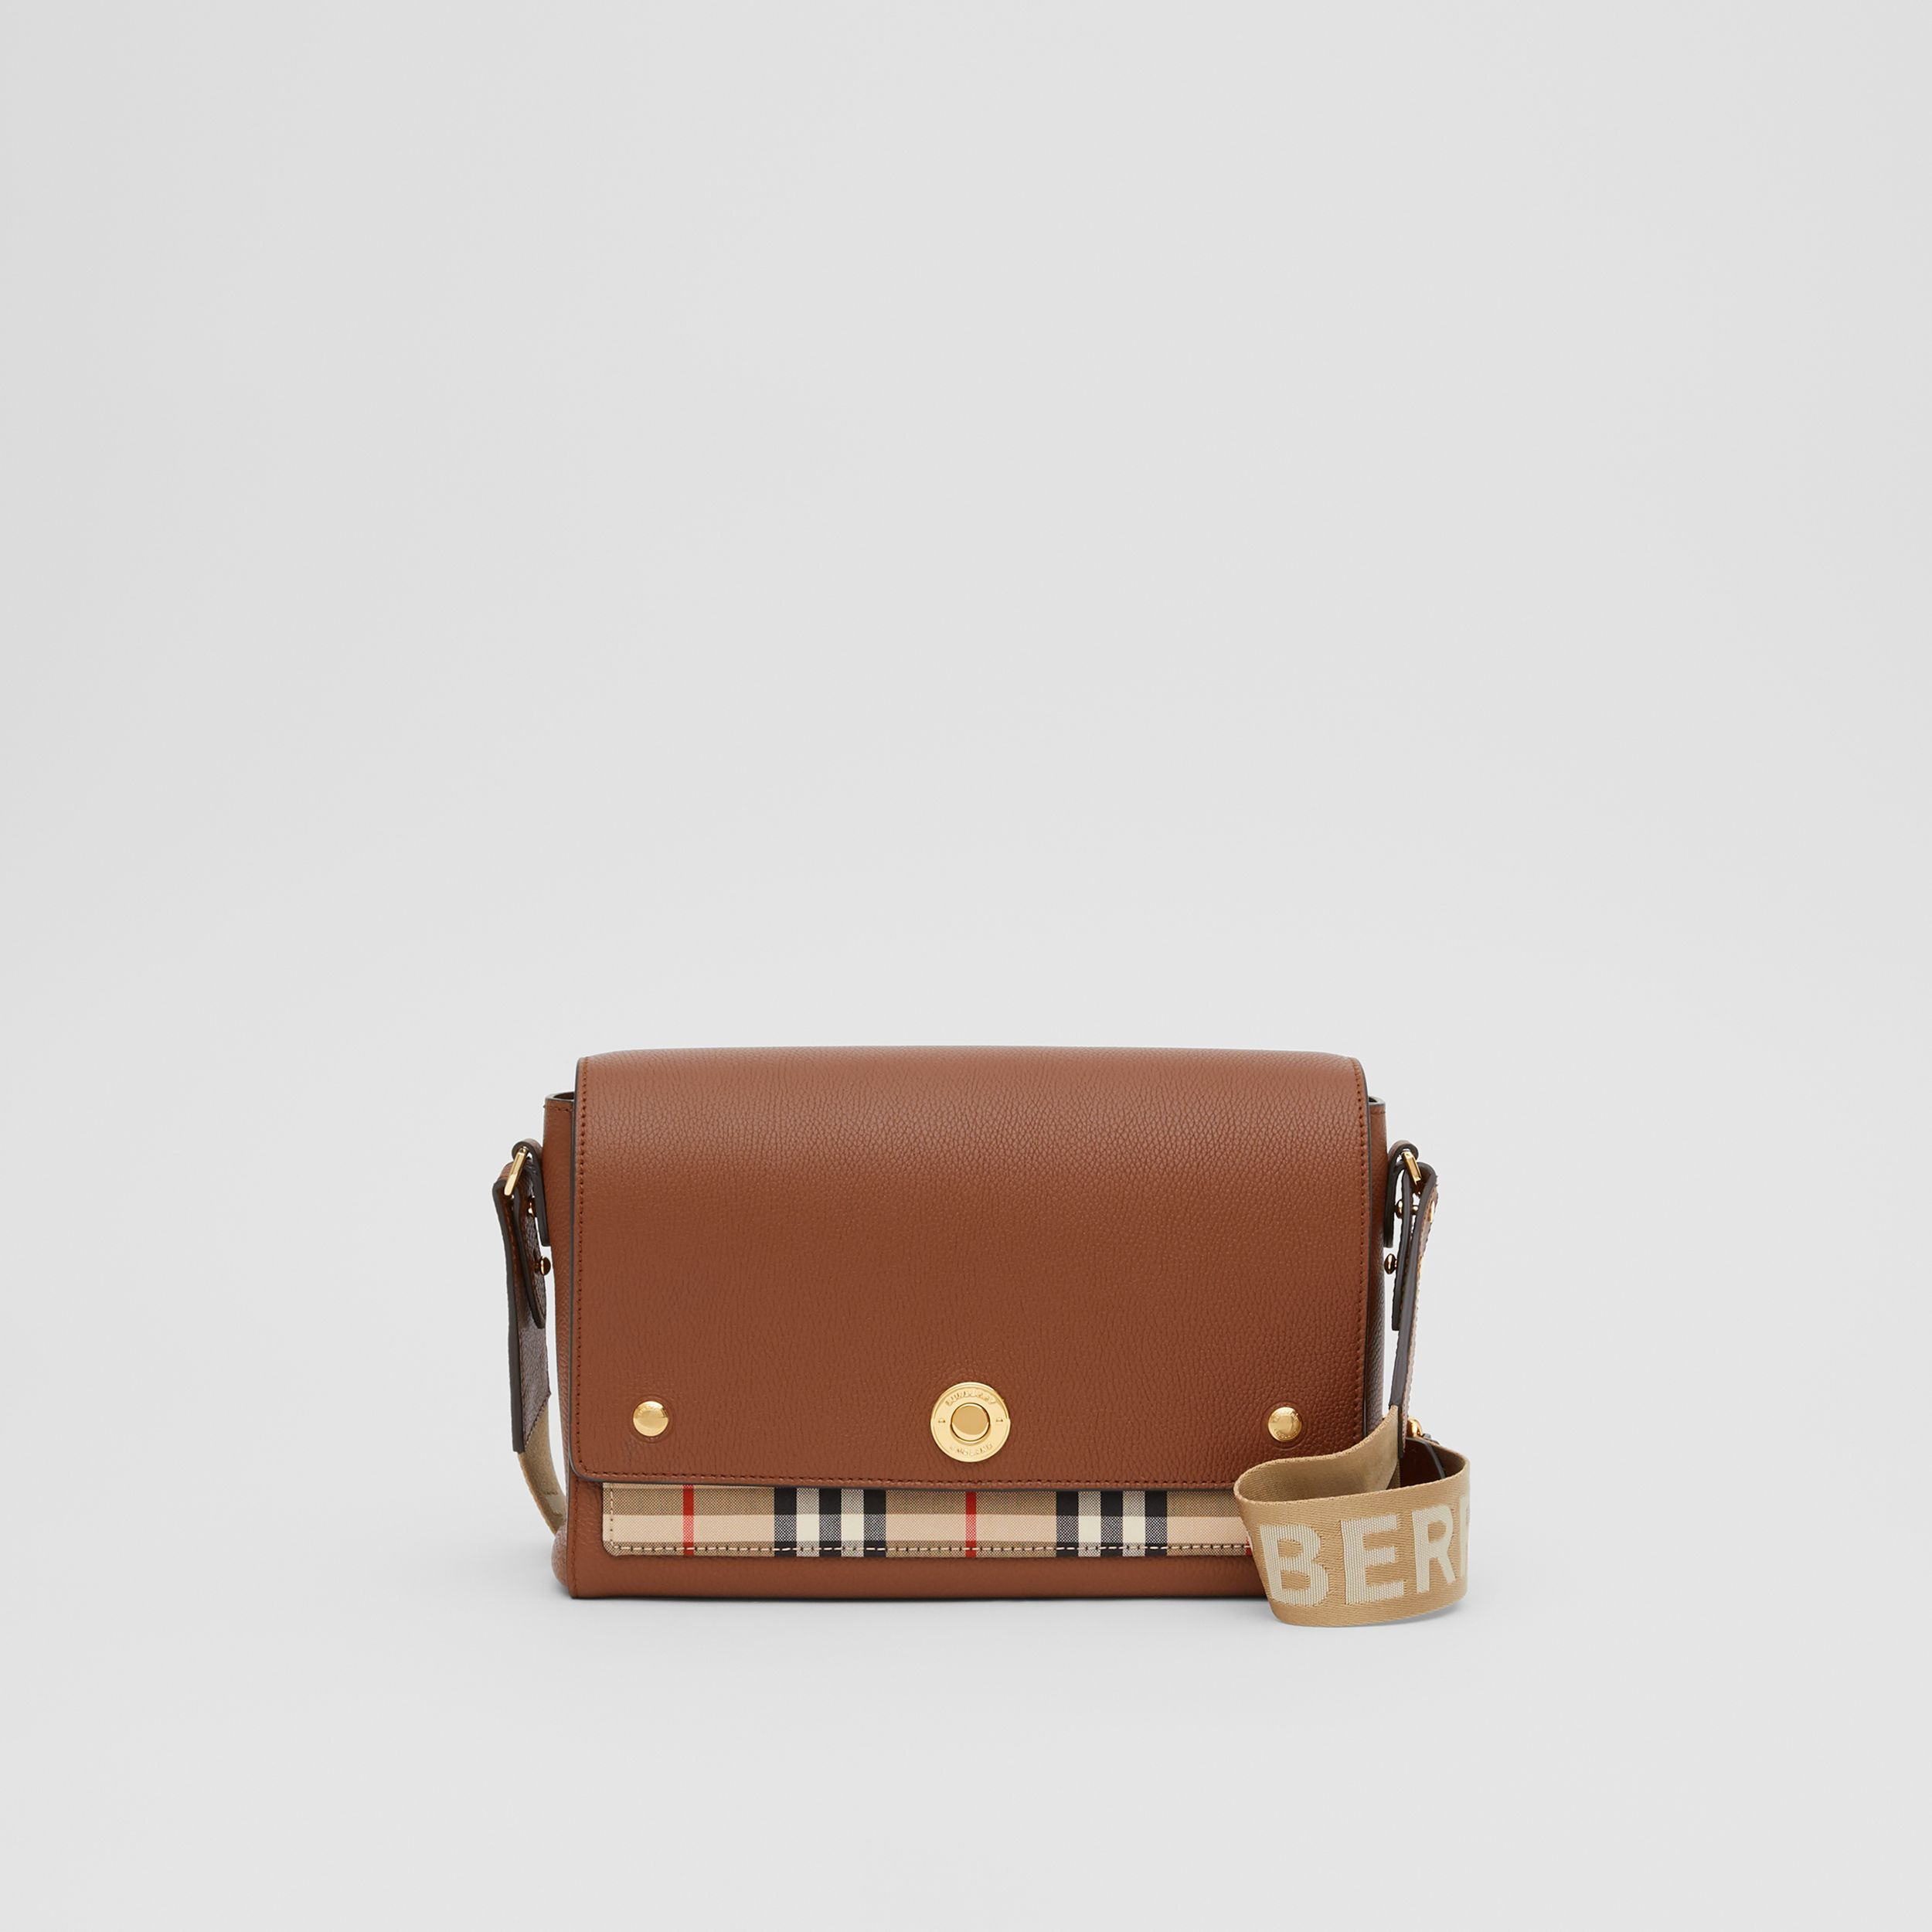 Leather and Vintage Check Note Crossbody Bag in Tan | Burberry - 1